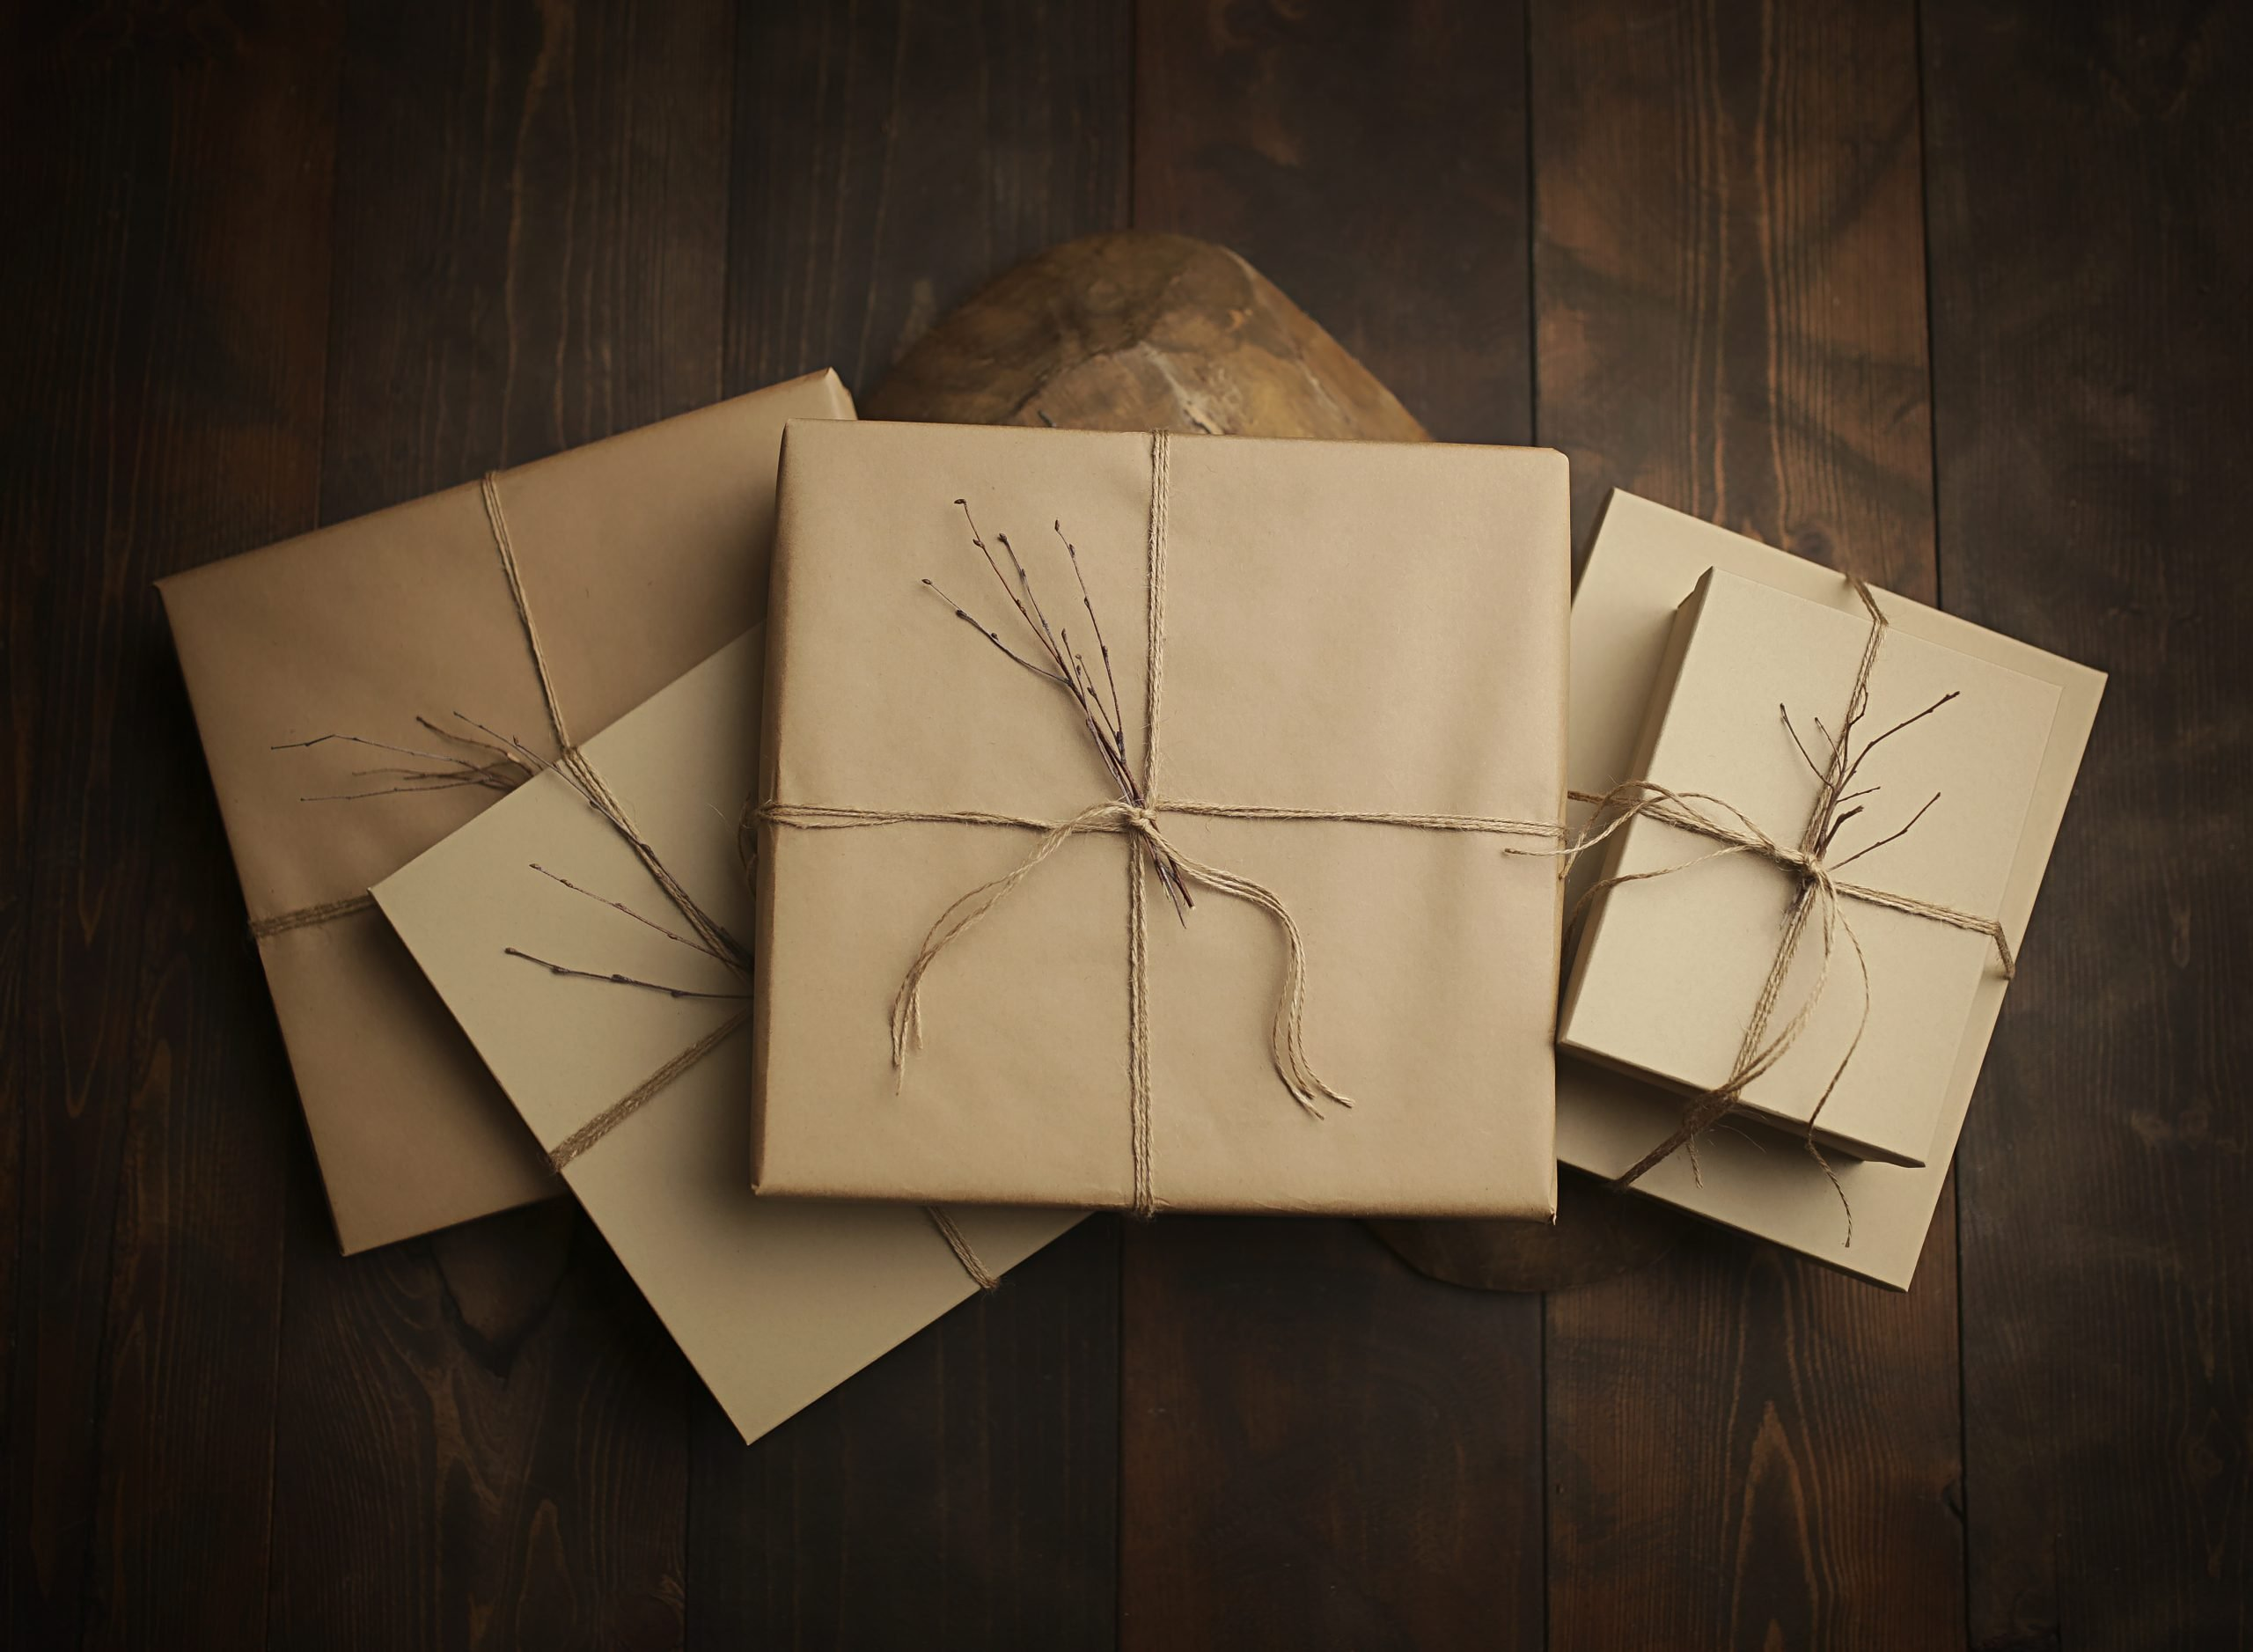 heirlooms/albums packaged in neutral paper and twine